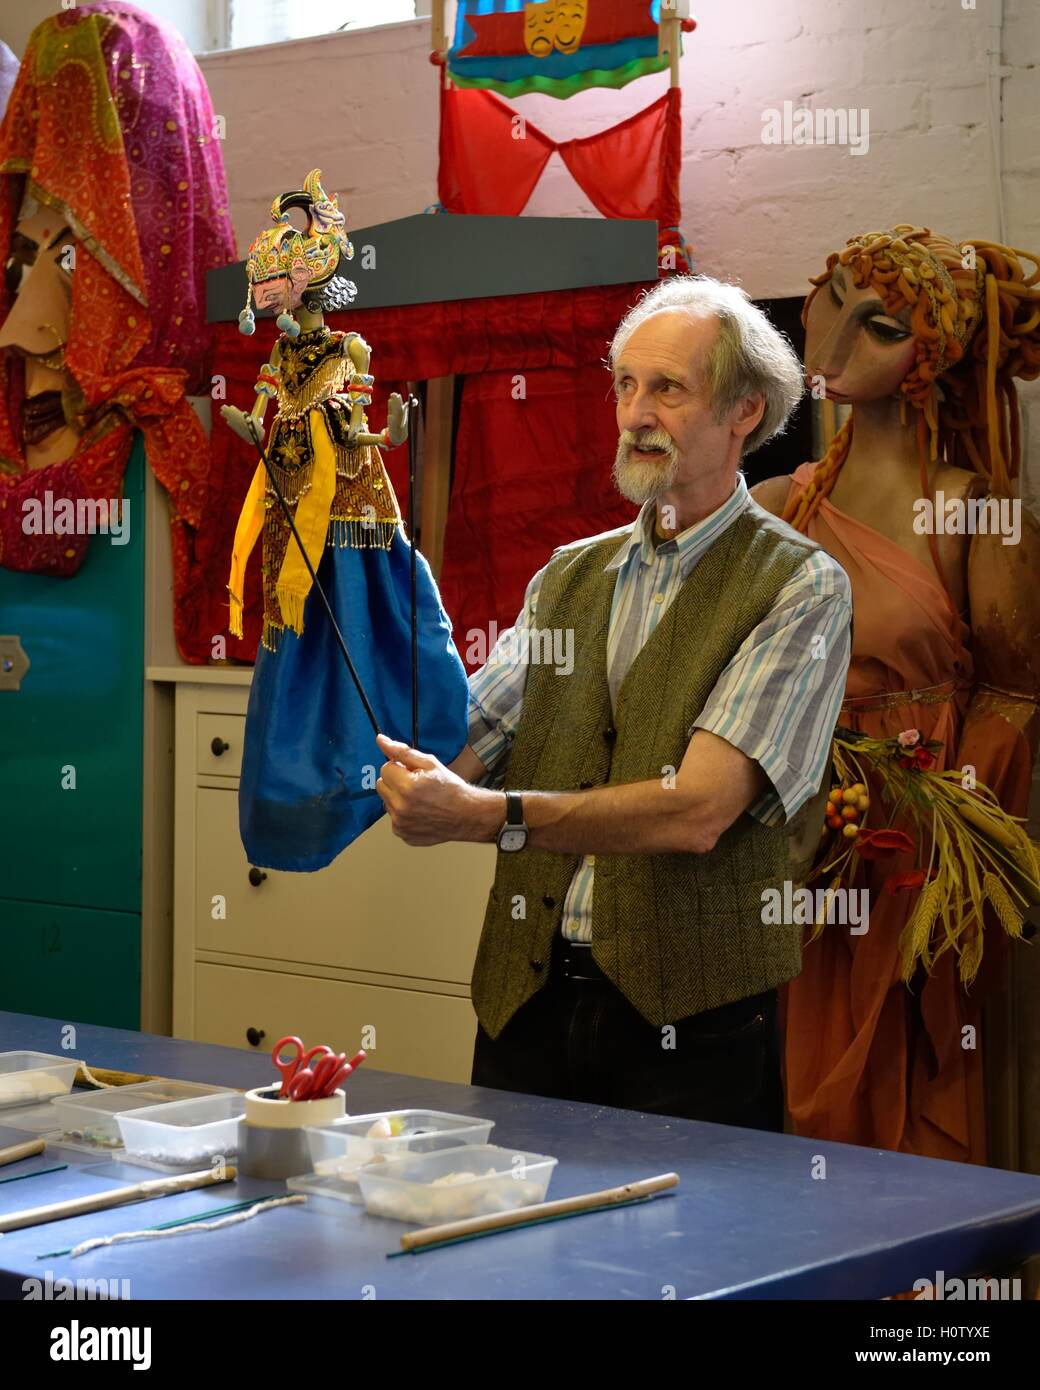 Dr Malcolm Y. Knight, puppeteer at the Scottish Mask and Puppet Centre workshop, Glasgow, Scotland, UK - Stock Image